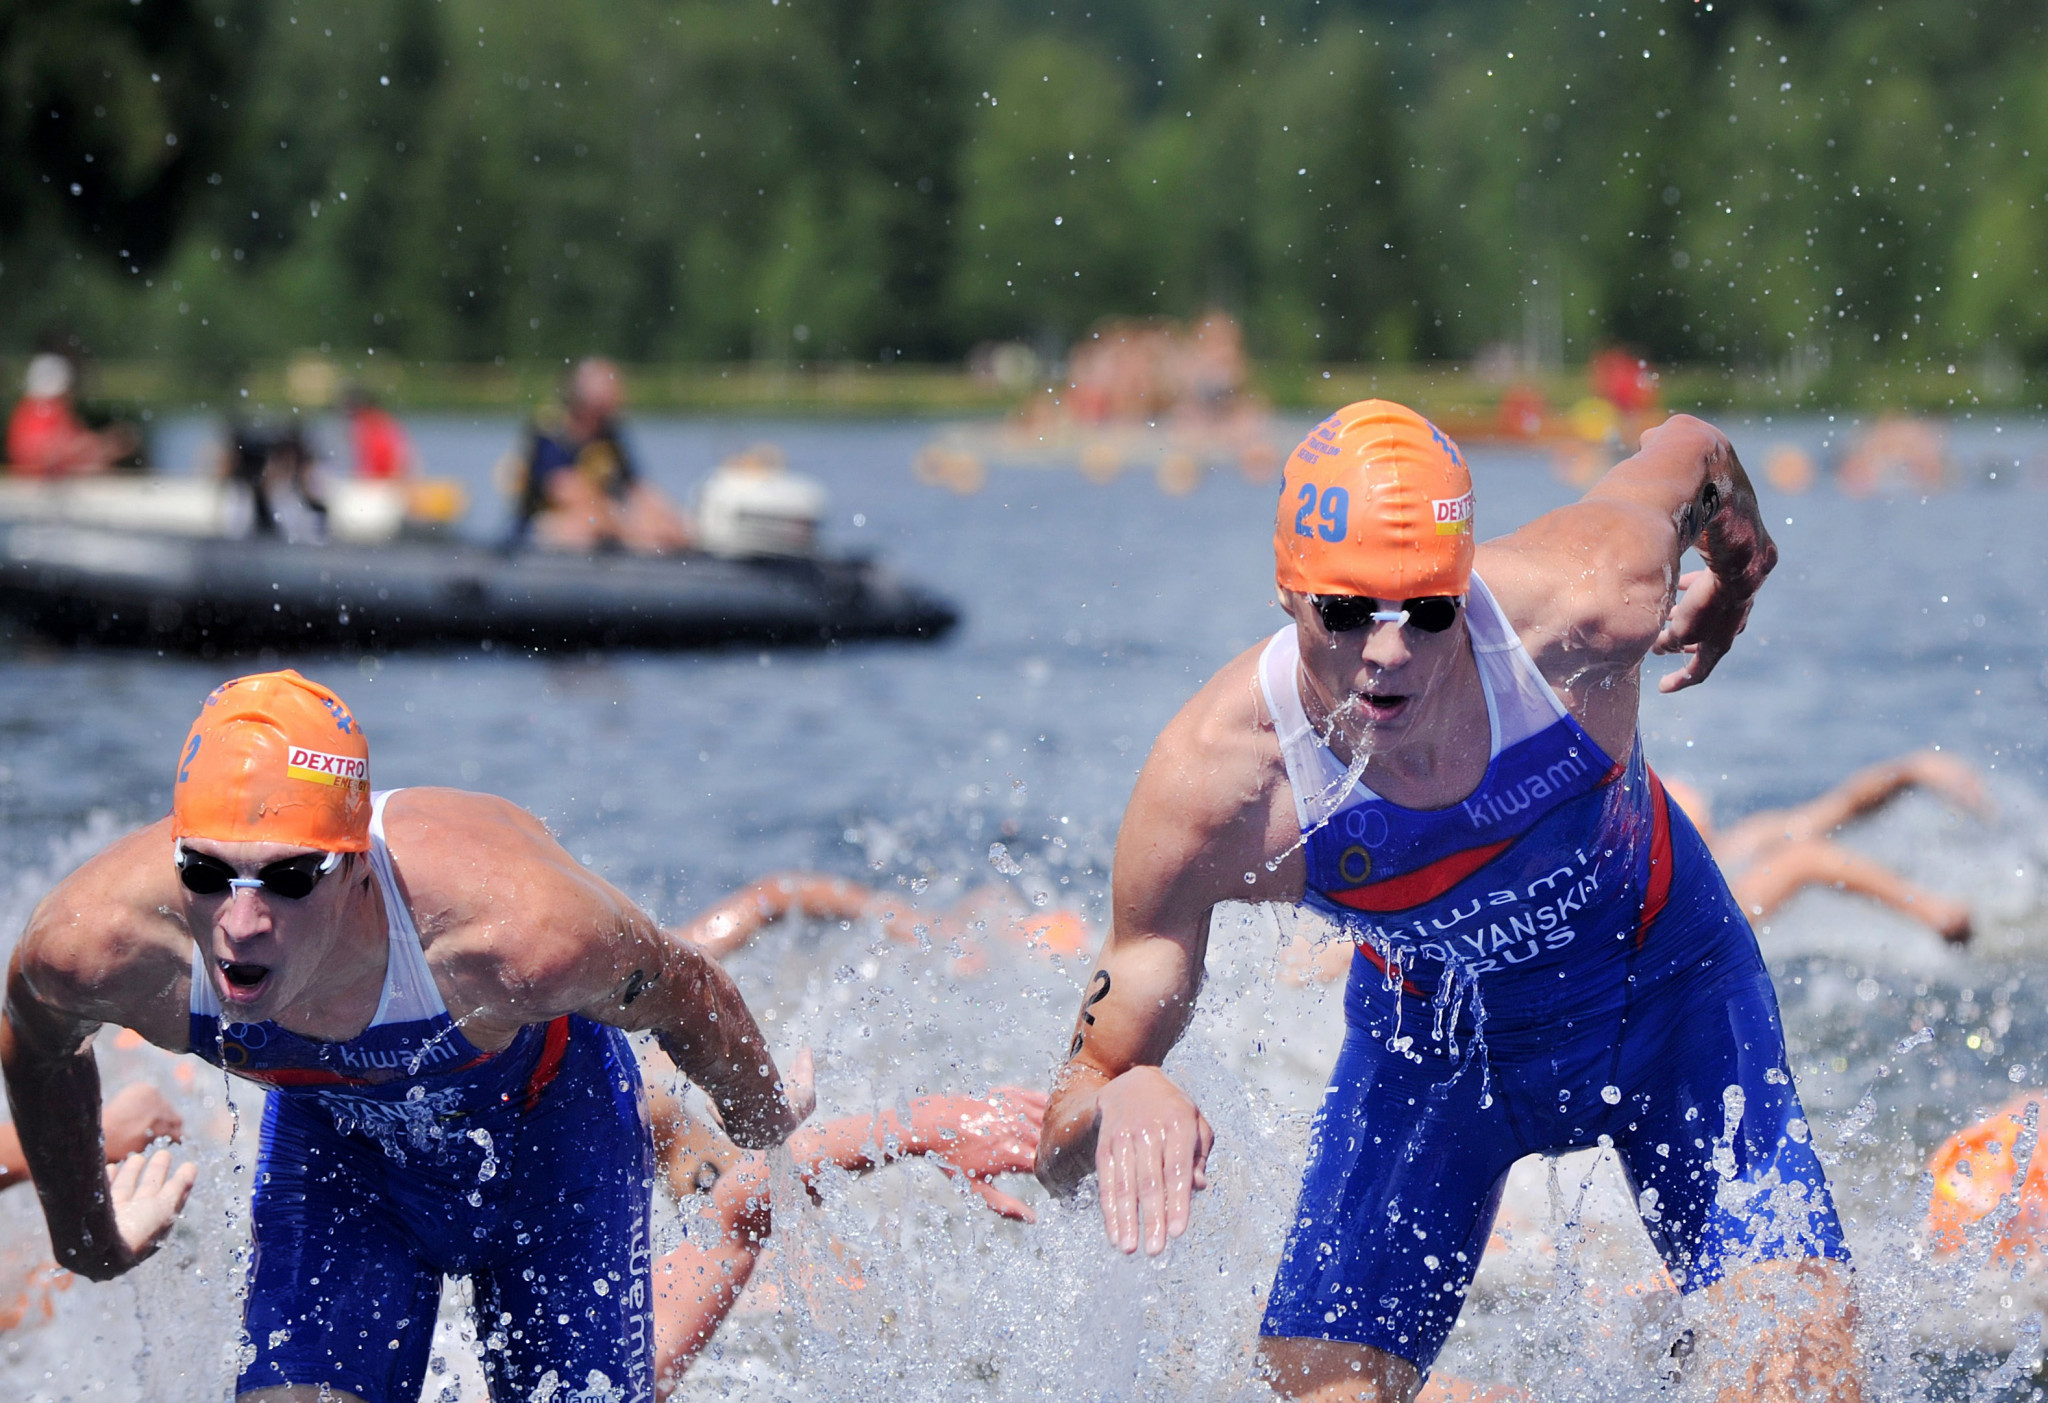 Russian triathlete Polyanskiy receives three-year ban for doping prior to Tokyo 2020 Olympics